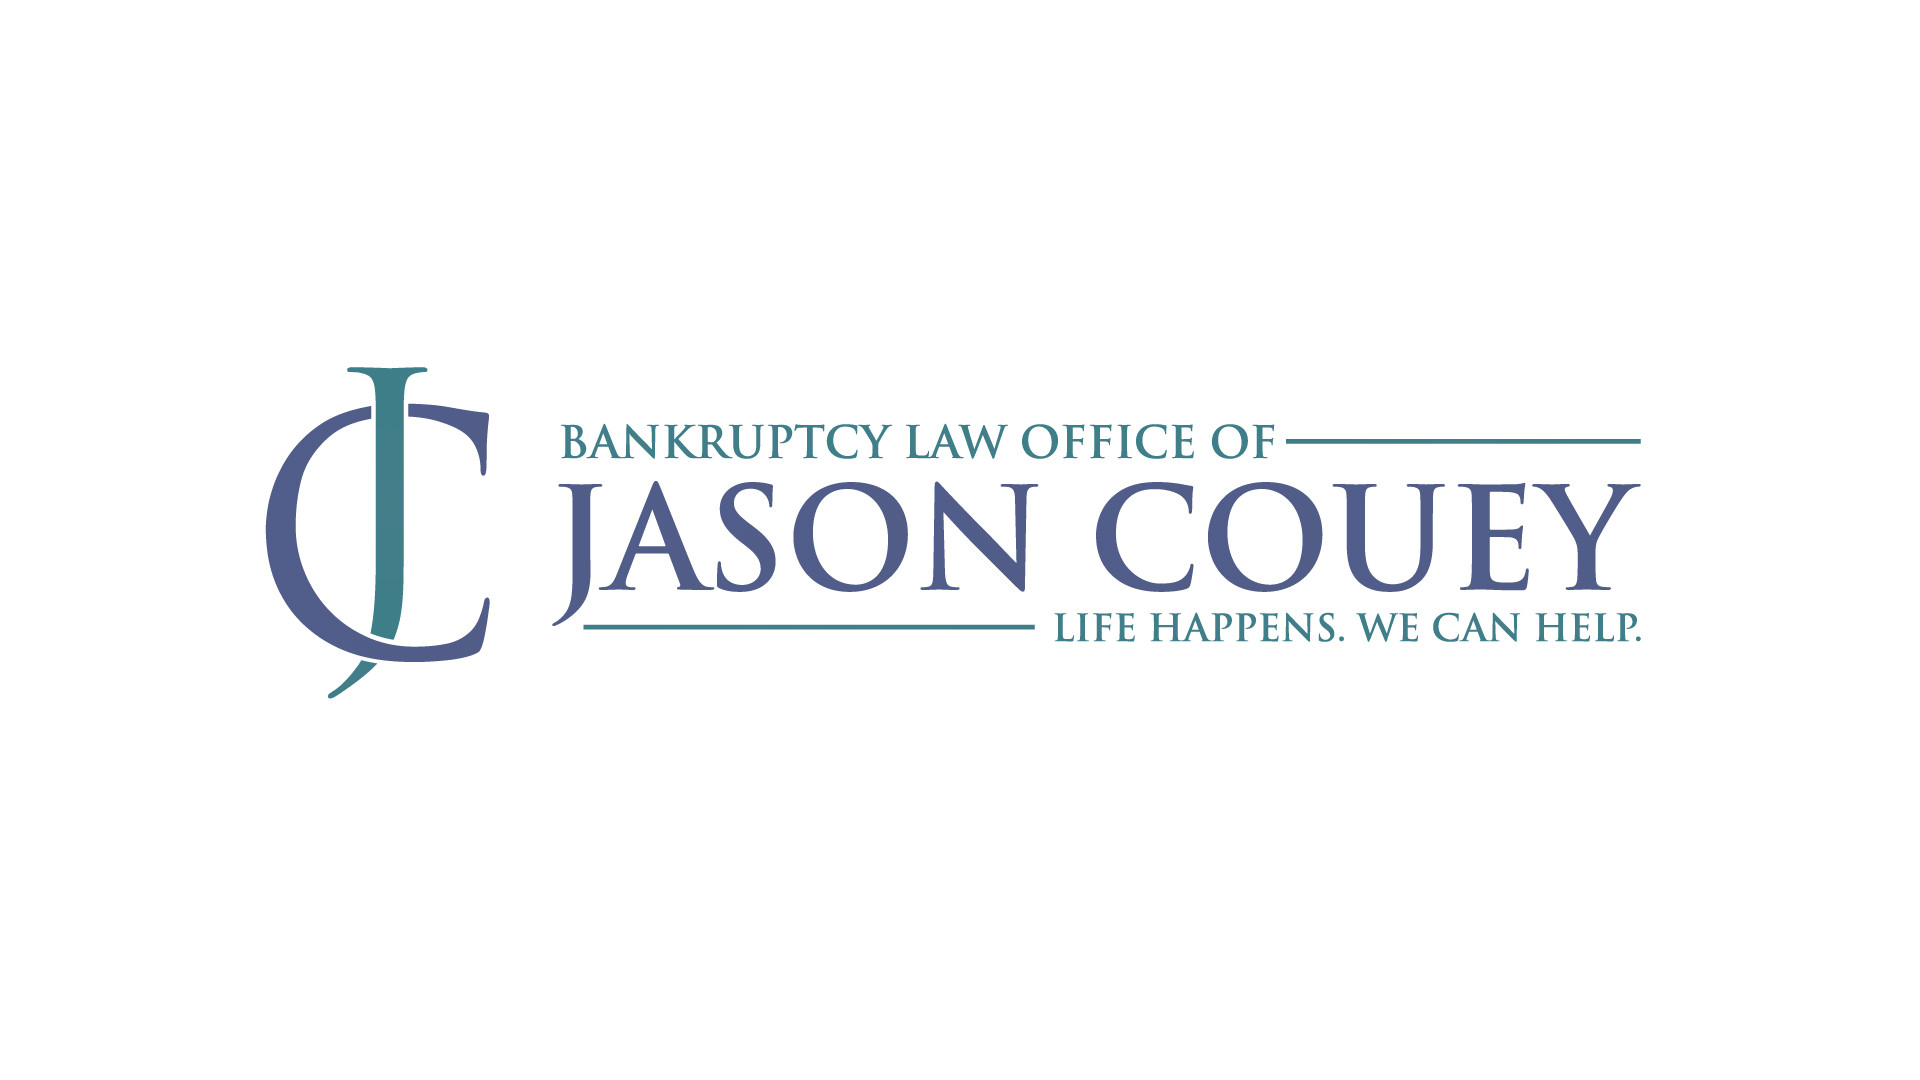 Law Office of Jason Couey